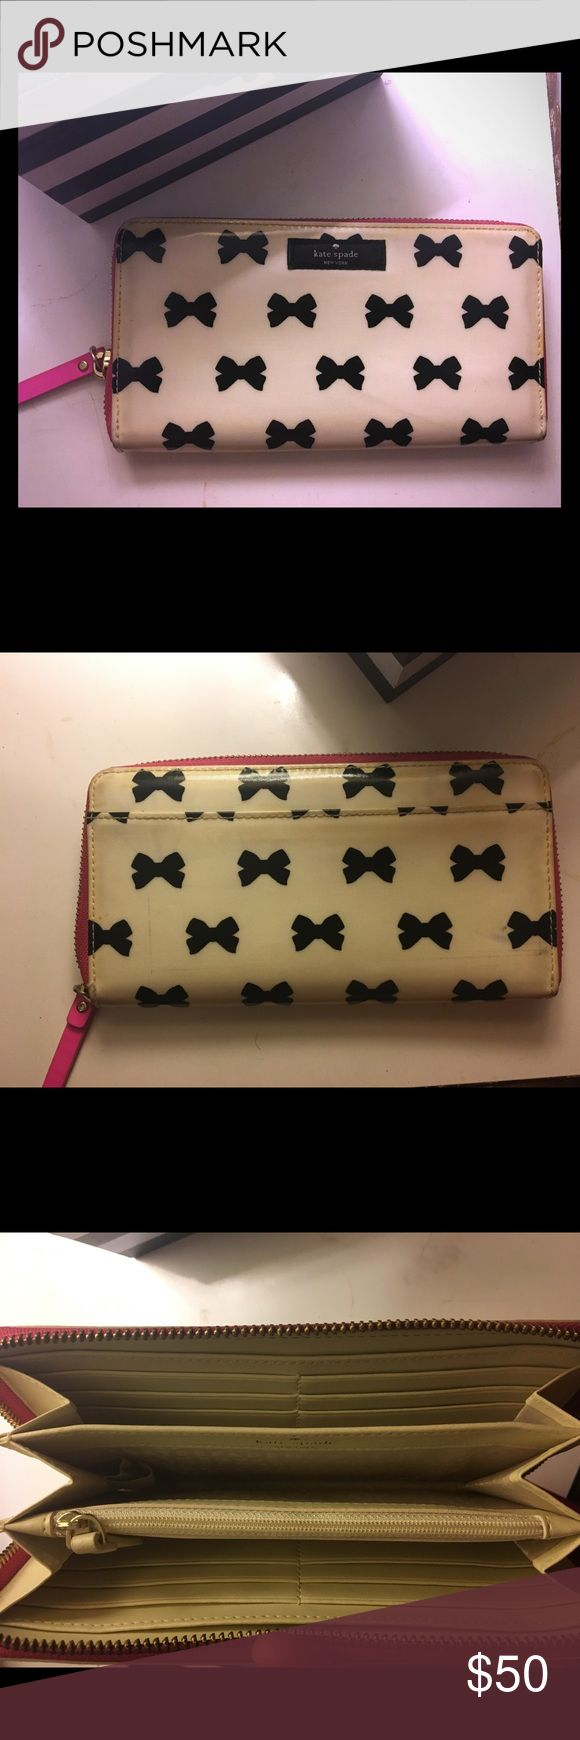 Kate Spade Bow Print Wallet Mid-size wallet with hot pink trim and bow detail. 12 card slots, 3 interior pockets, one exterior pocket. A little worn. kate spade Bags Wallets